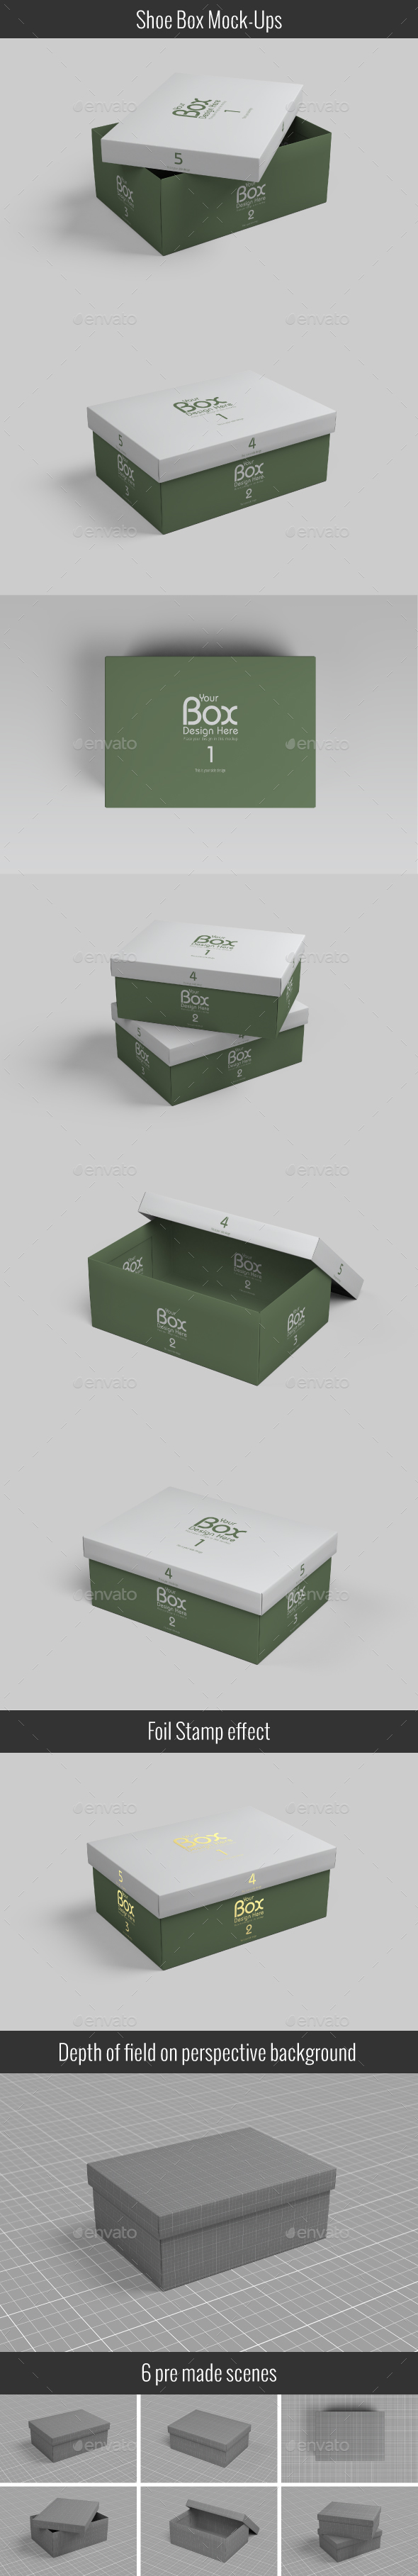 Shoe Box Mockups - Packaging Product Mock-Ups